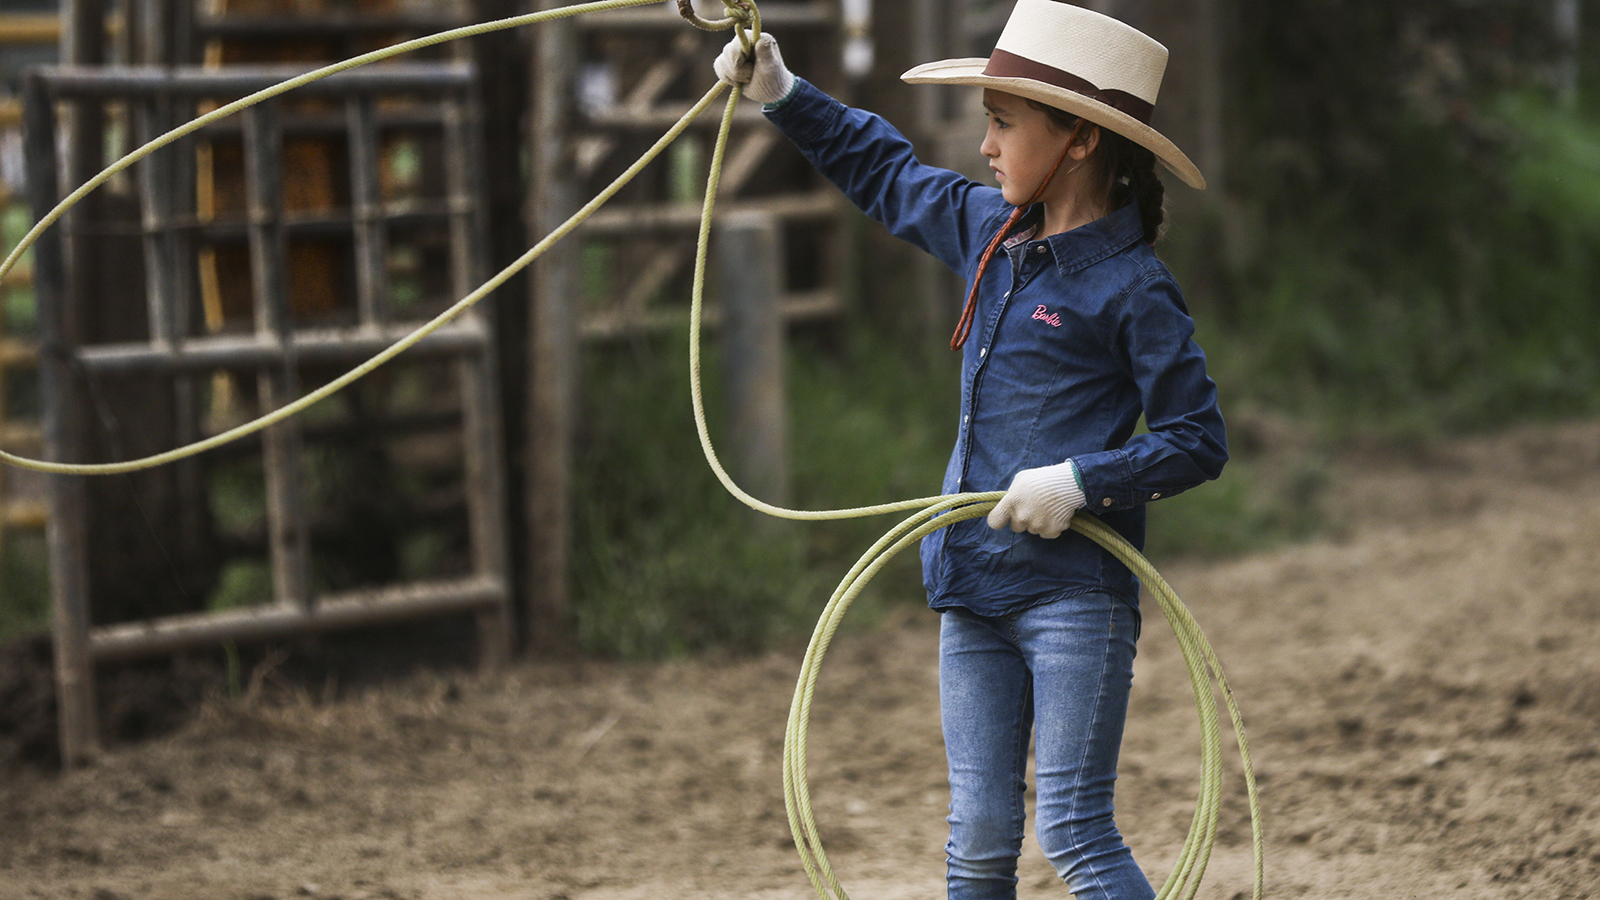 A student at rodeo school Rancho Apalache swings a rope.